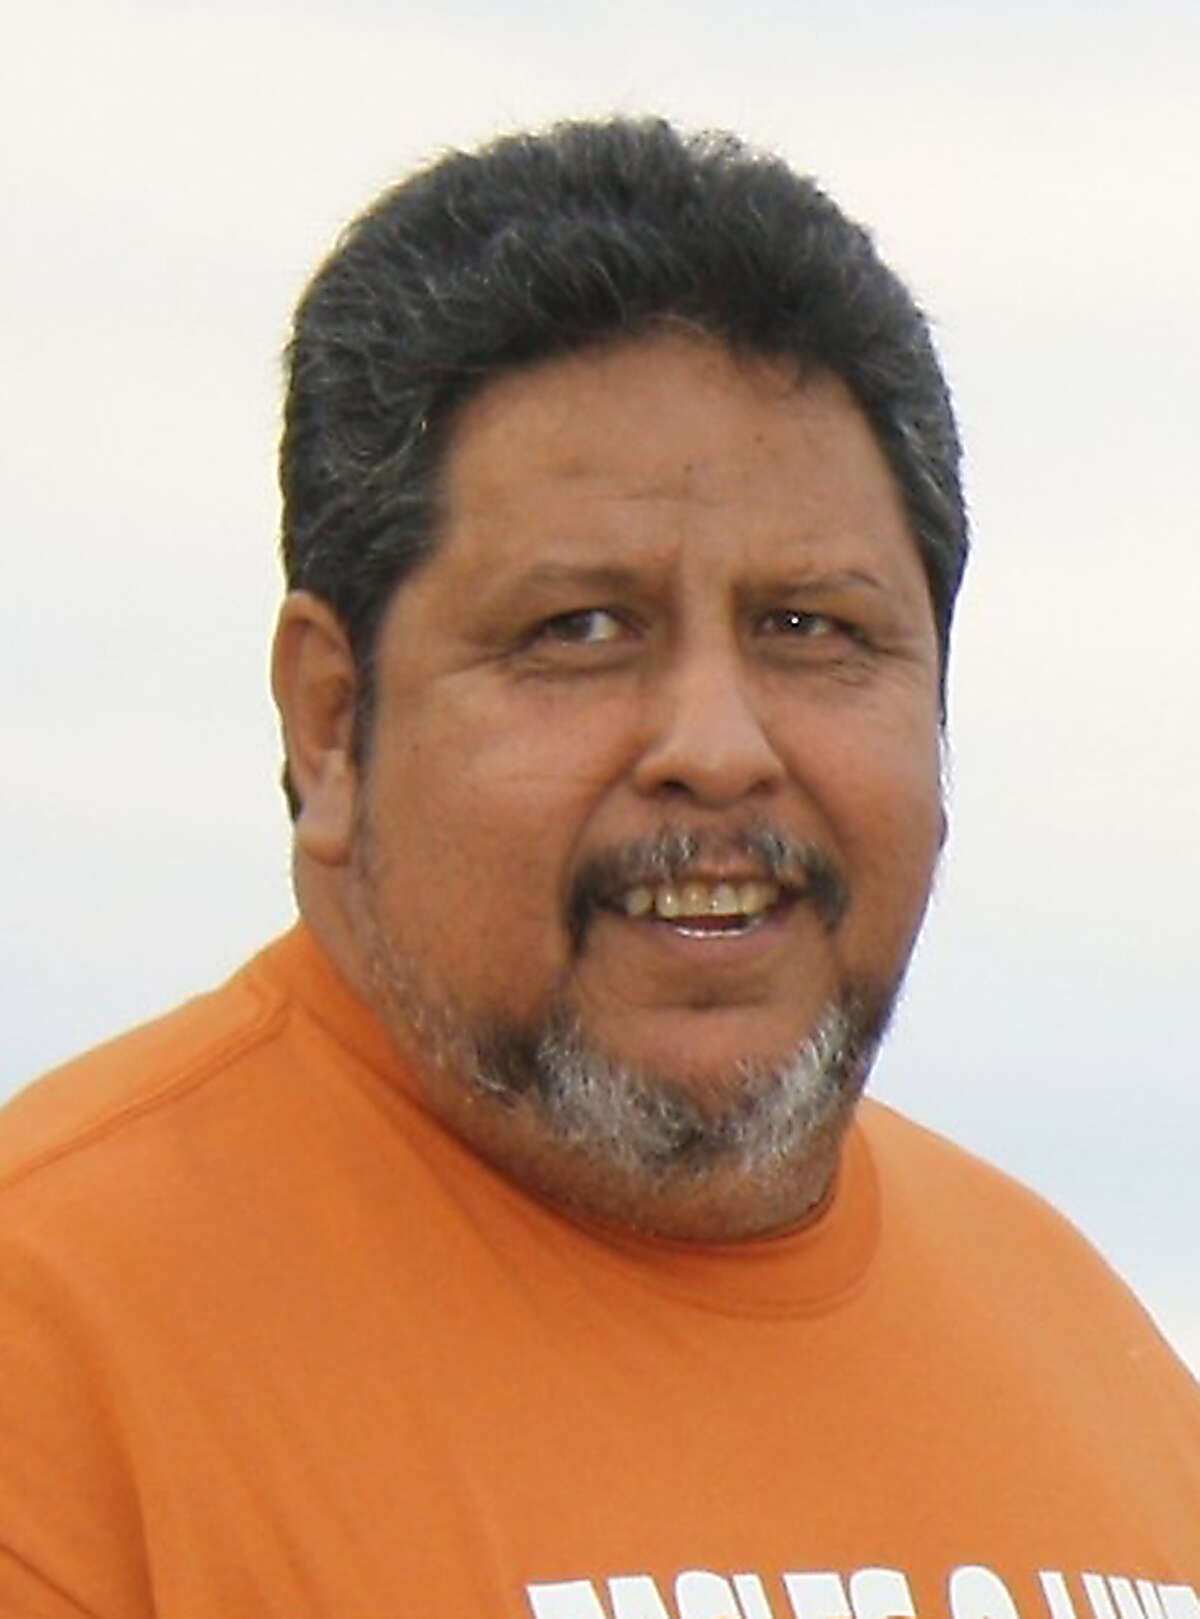 Former Maverick County justice of the peace Cesar Iracheta was indicted on two counts of paying bribes.